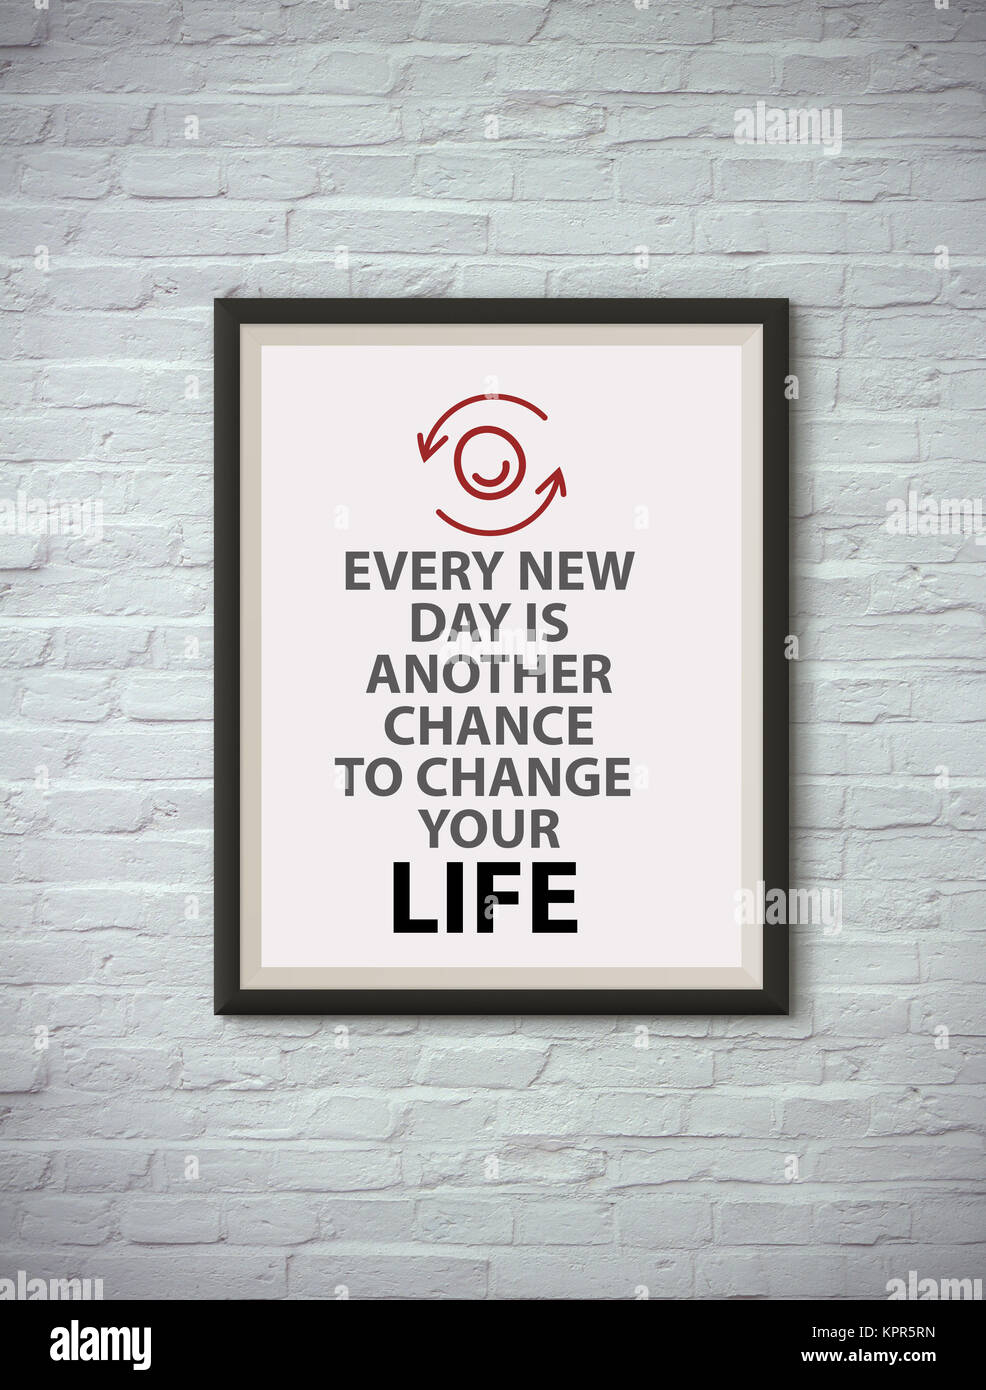 Inspirational motivating quote on picture frame Stock Photo ...